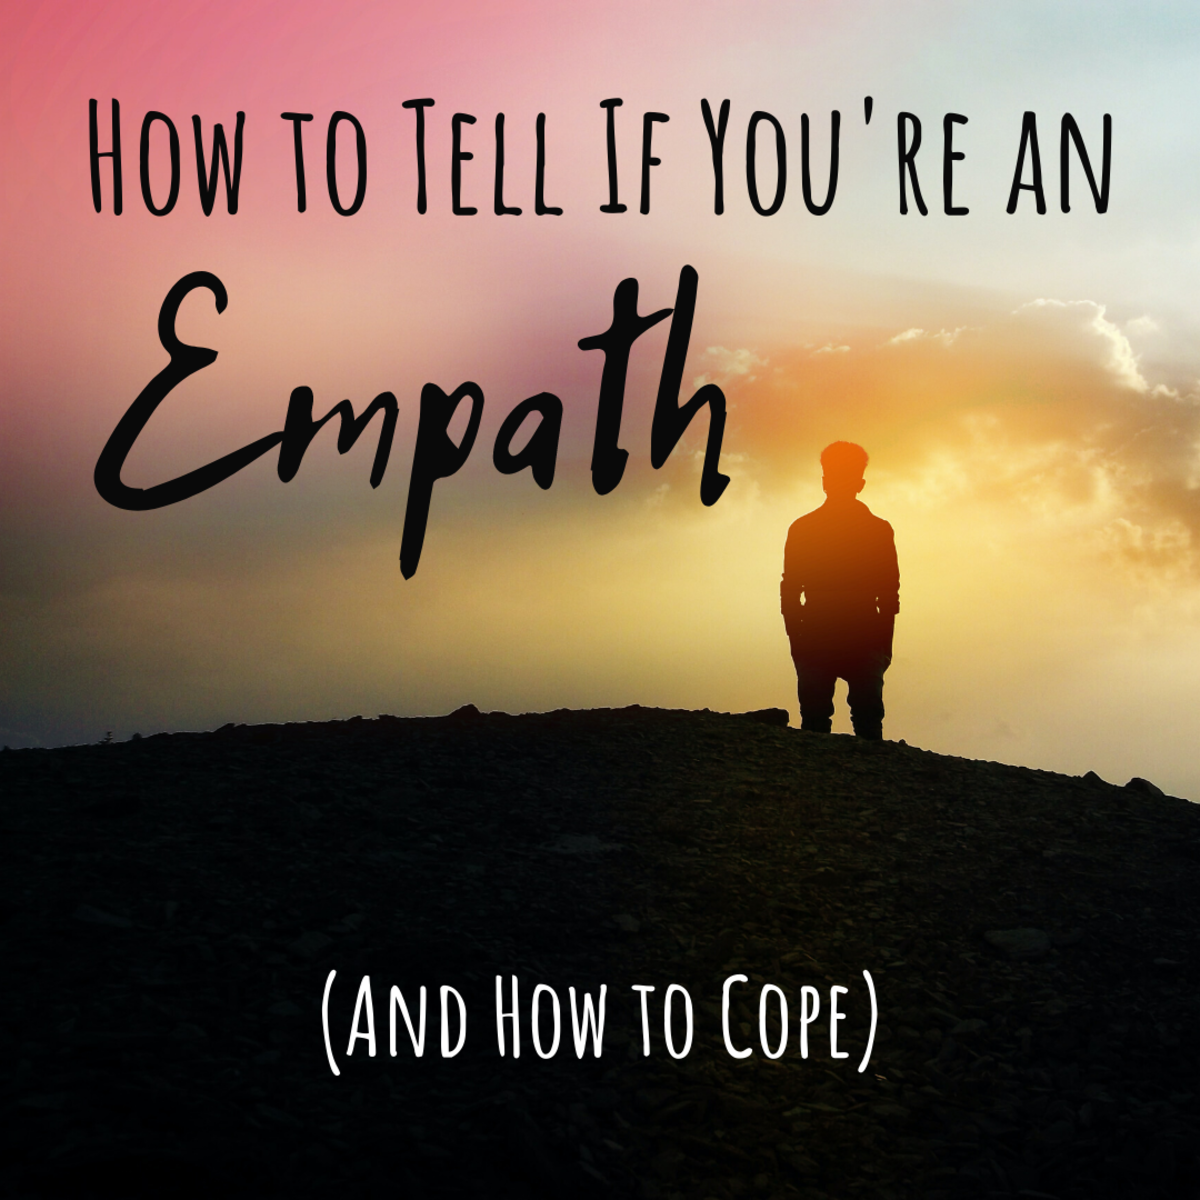 Explore some common traits of empaths, and get advice on how to cope when you feel overloaded by the emotions around you.